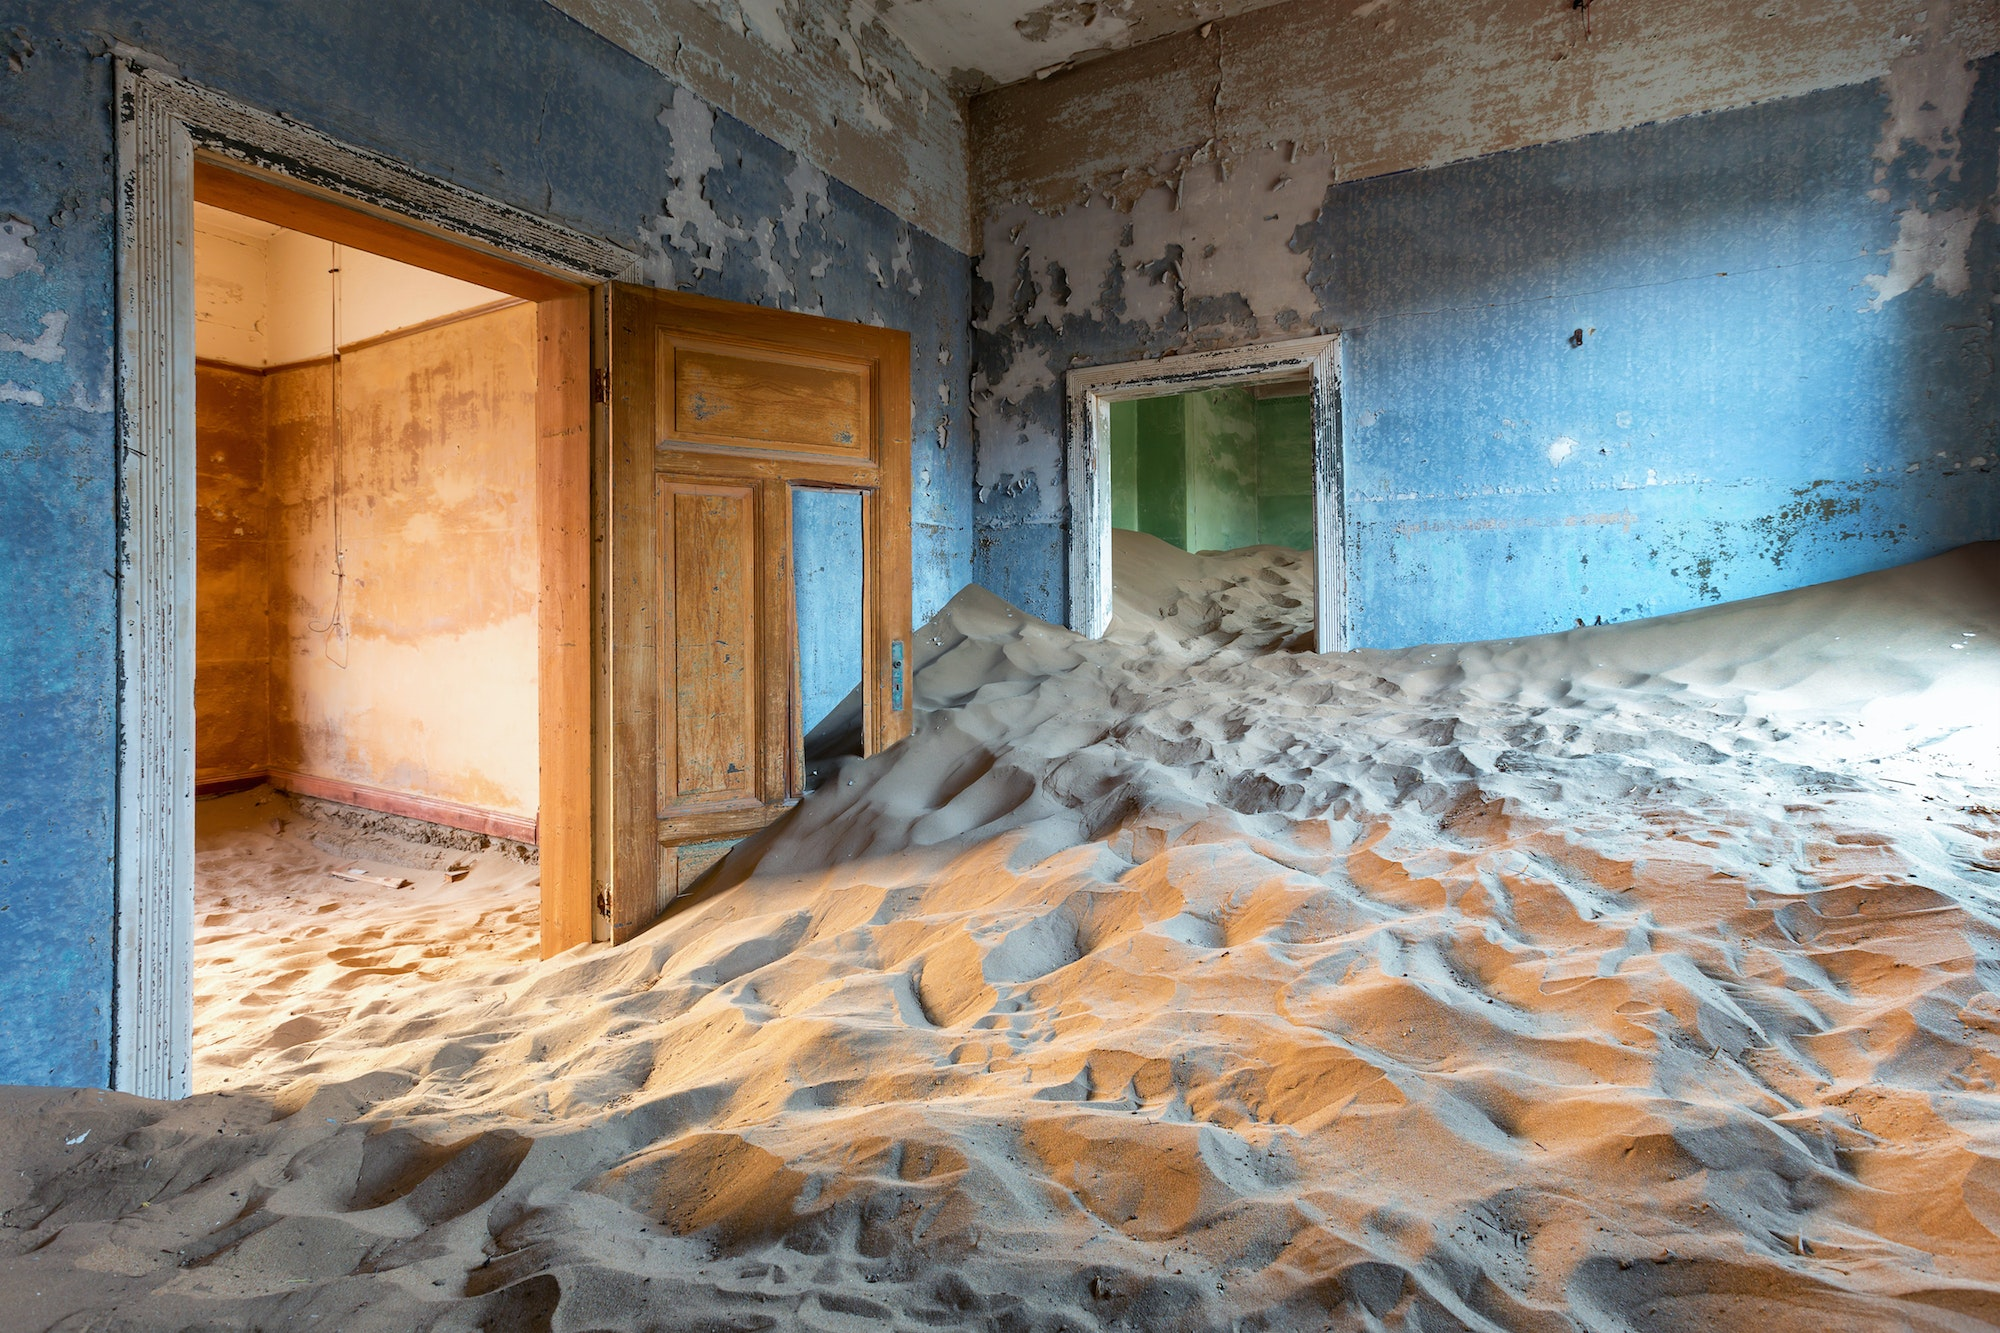 The dilapidated buildings that once housed German settlers have since been reclaimed by Namibia's desert sands.